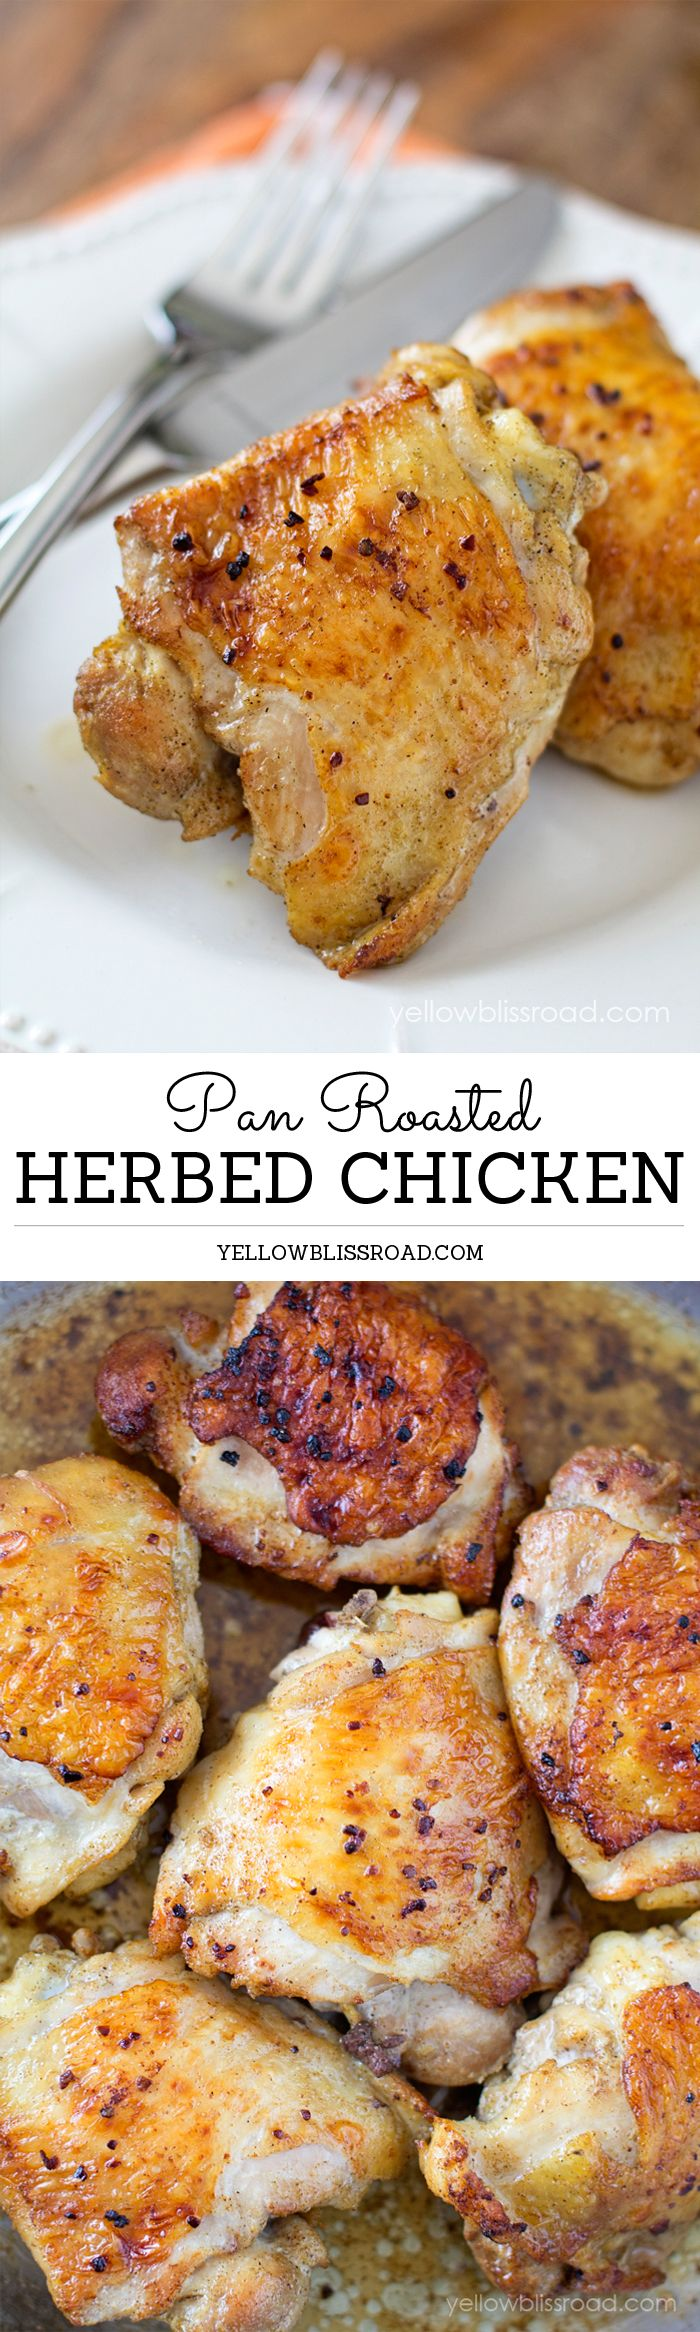 fitflop cheapest price Pan Roasted Herbed Ckicken  deliciously savory and so easy to make  For an MRC menu use chicken breast